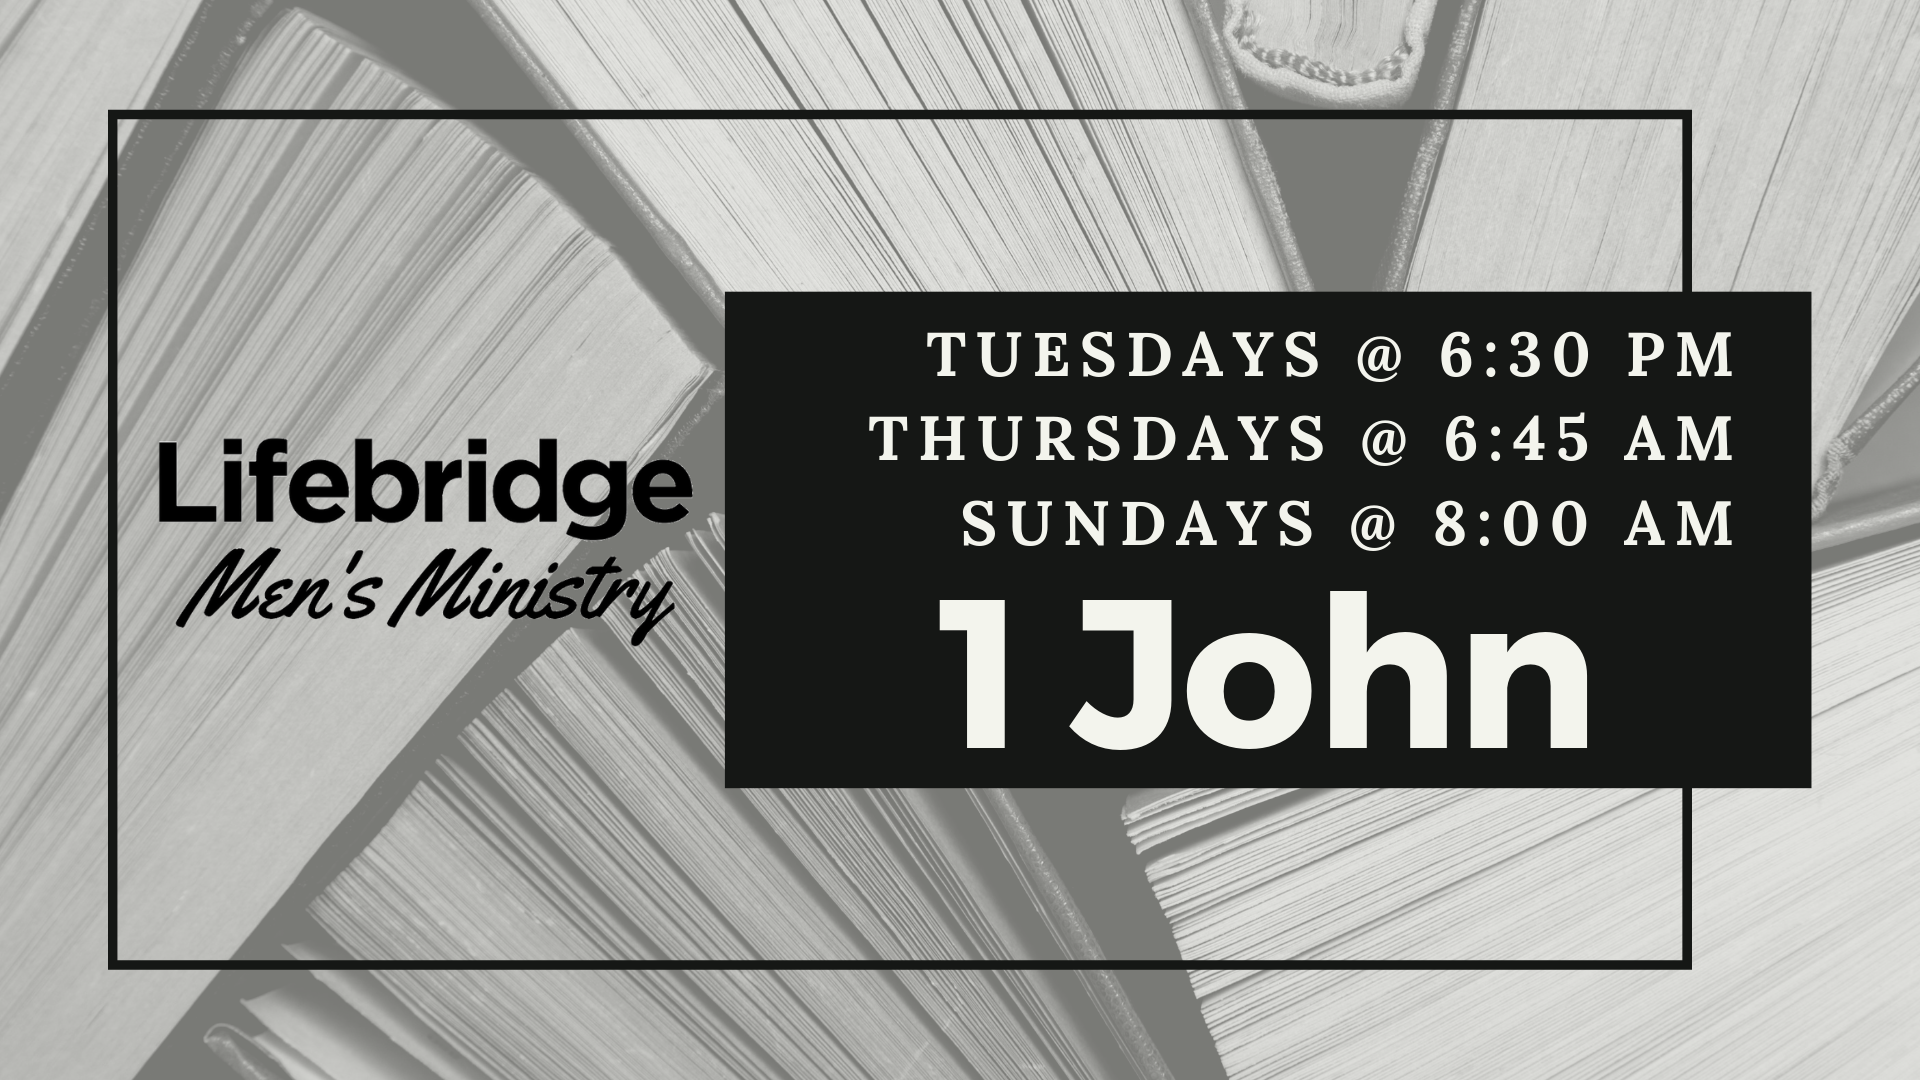 Join the Lifebridge Men's Ministry as we study 1 John. This time of study and fellowship will now be three times a week, Tuesday nights, Thursday mornings, or Sunday mornings.